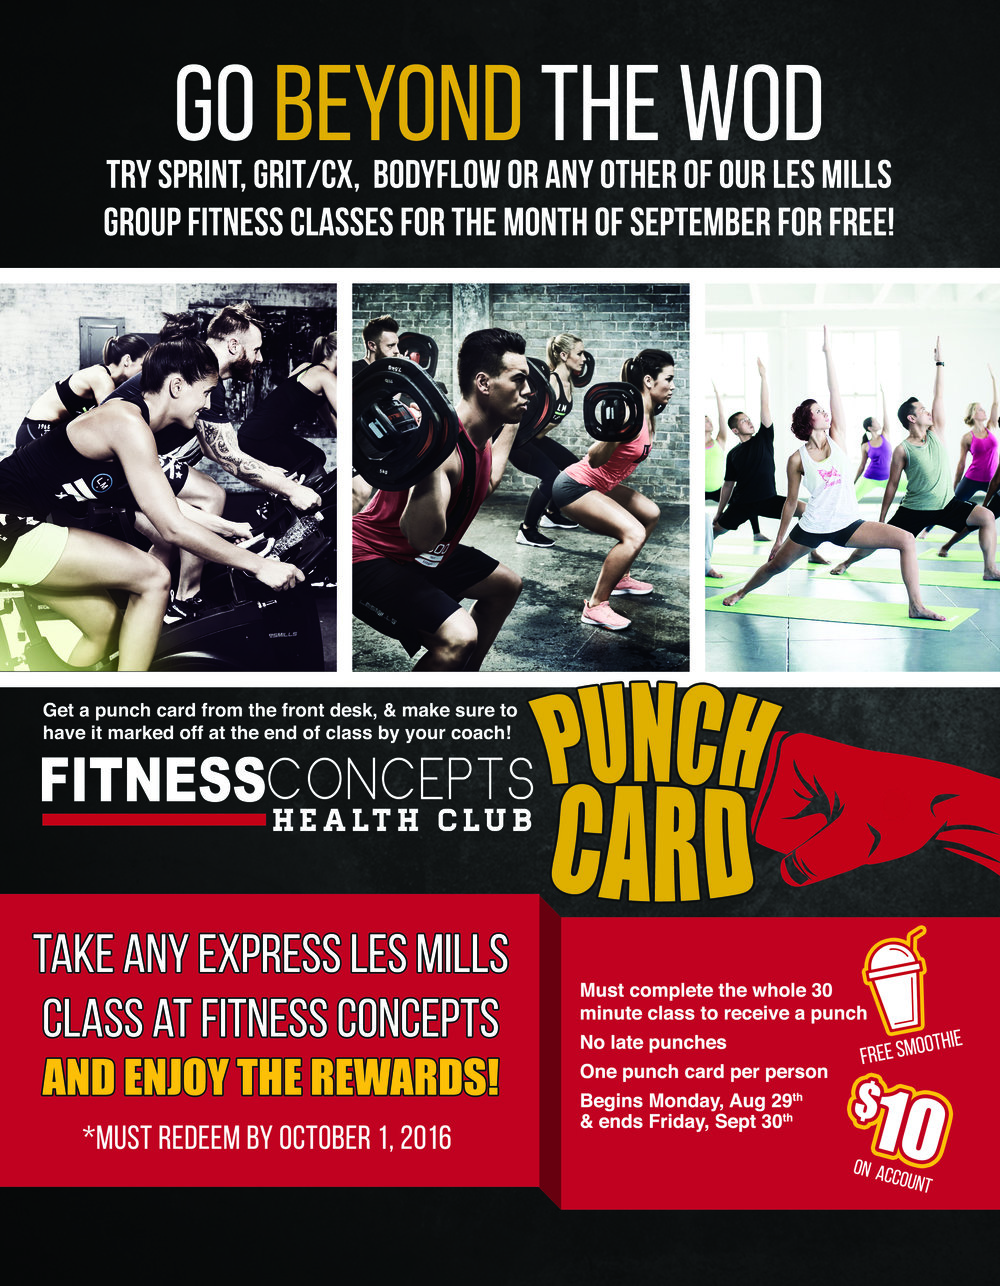 crossfit_promo_punch_card_flyer2.jpg